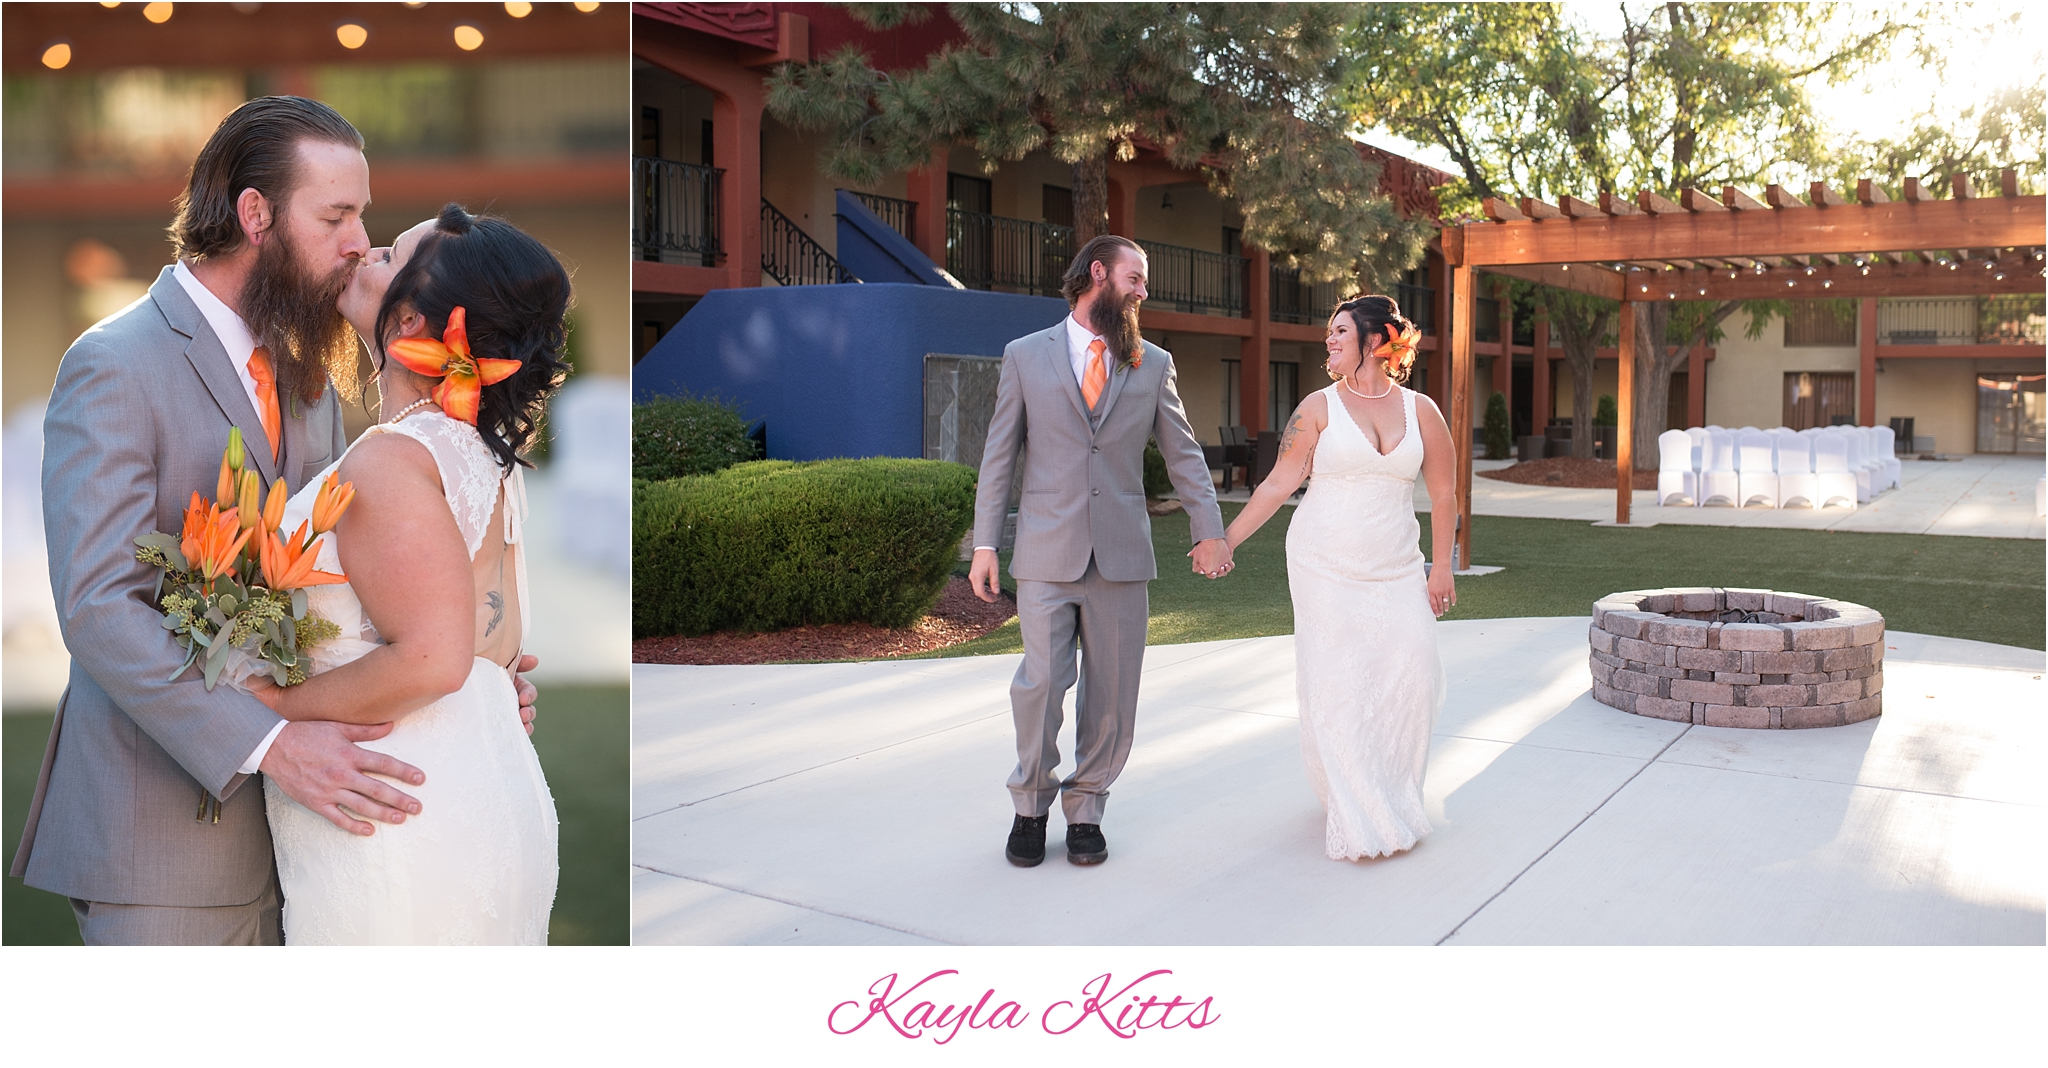 kayla kitts photography - albuquerque wedding photographer - albuquerque wedding photography - albuquerque venue - casa de suenos - hotel albuquerque wedding - new mexico wedding photographer - los poblanos wedding_0009.jpeg